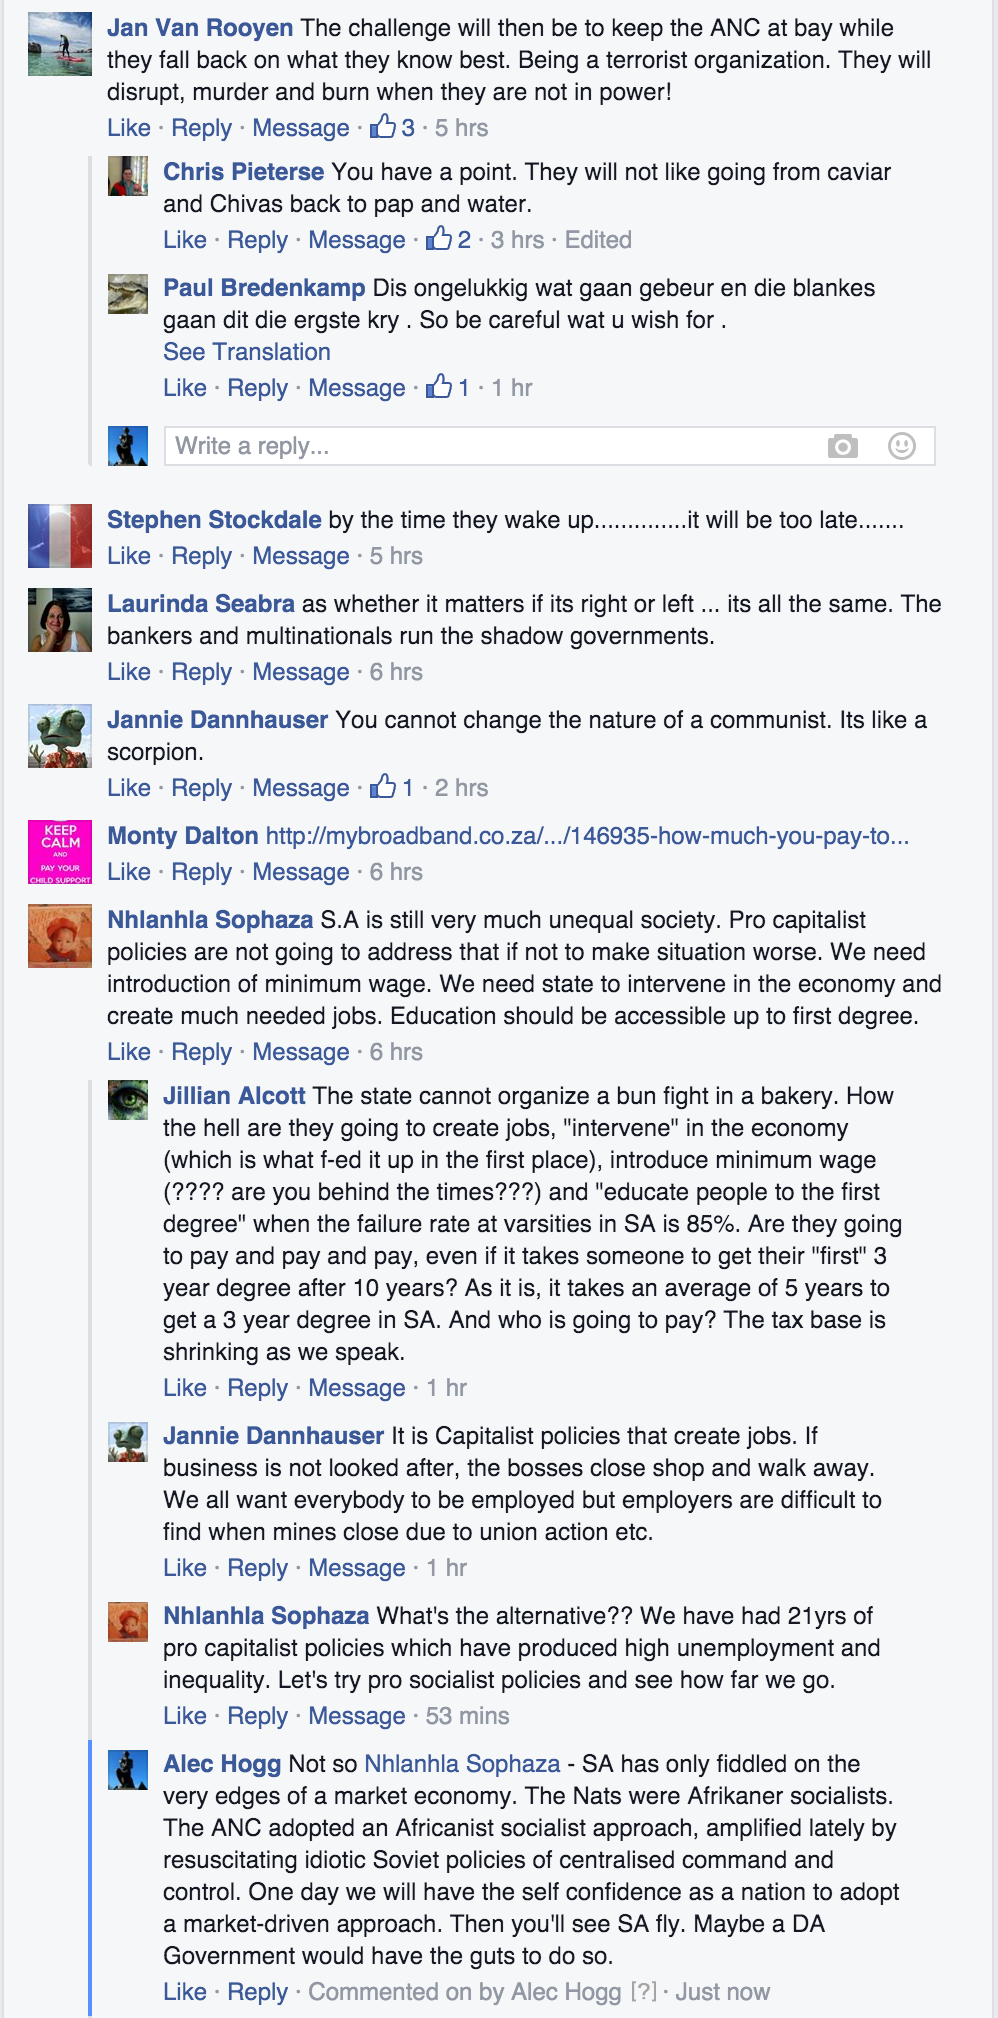 Some of the comments under the link to this story on Alec Hogg's Faccebnoook page